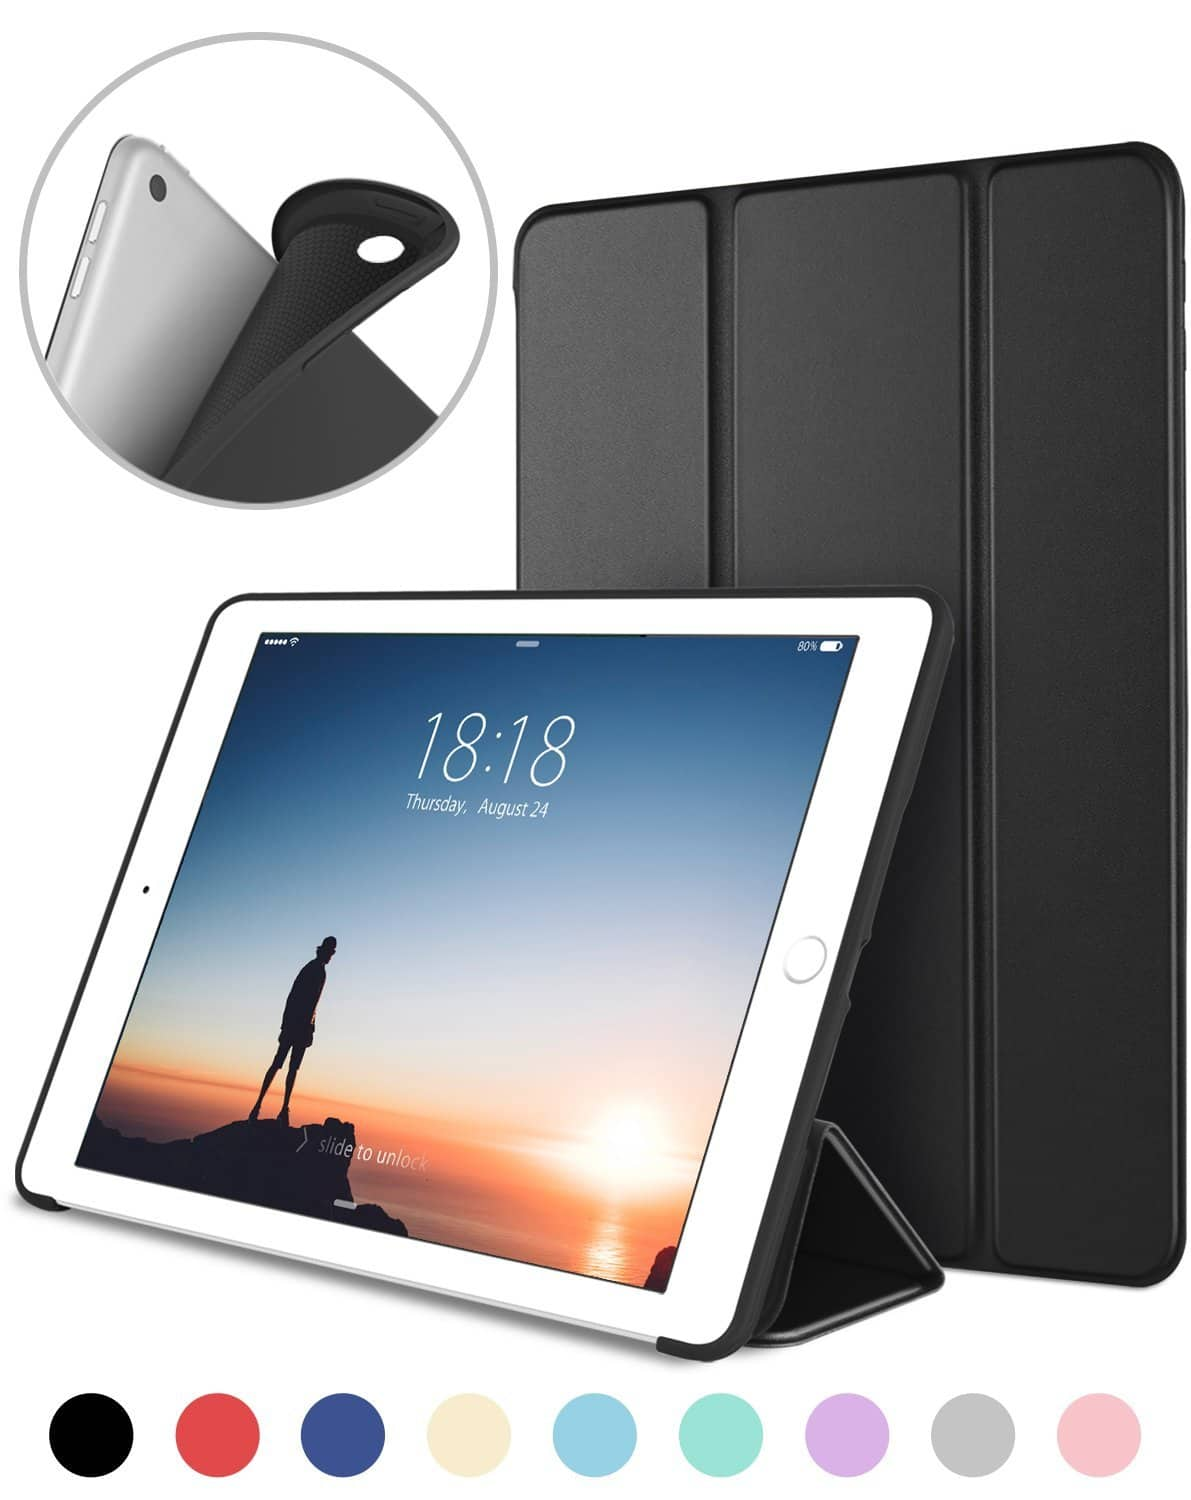 Slim Fit Lightweight Smart Cover with Soft TPU Back Case for iPad 9.7 2018/2017 from $4.94